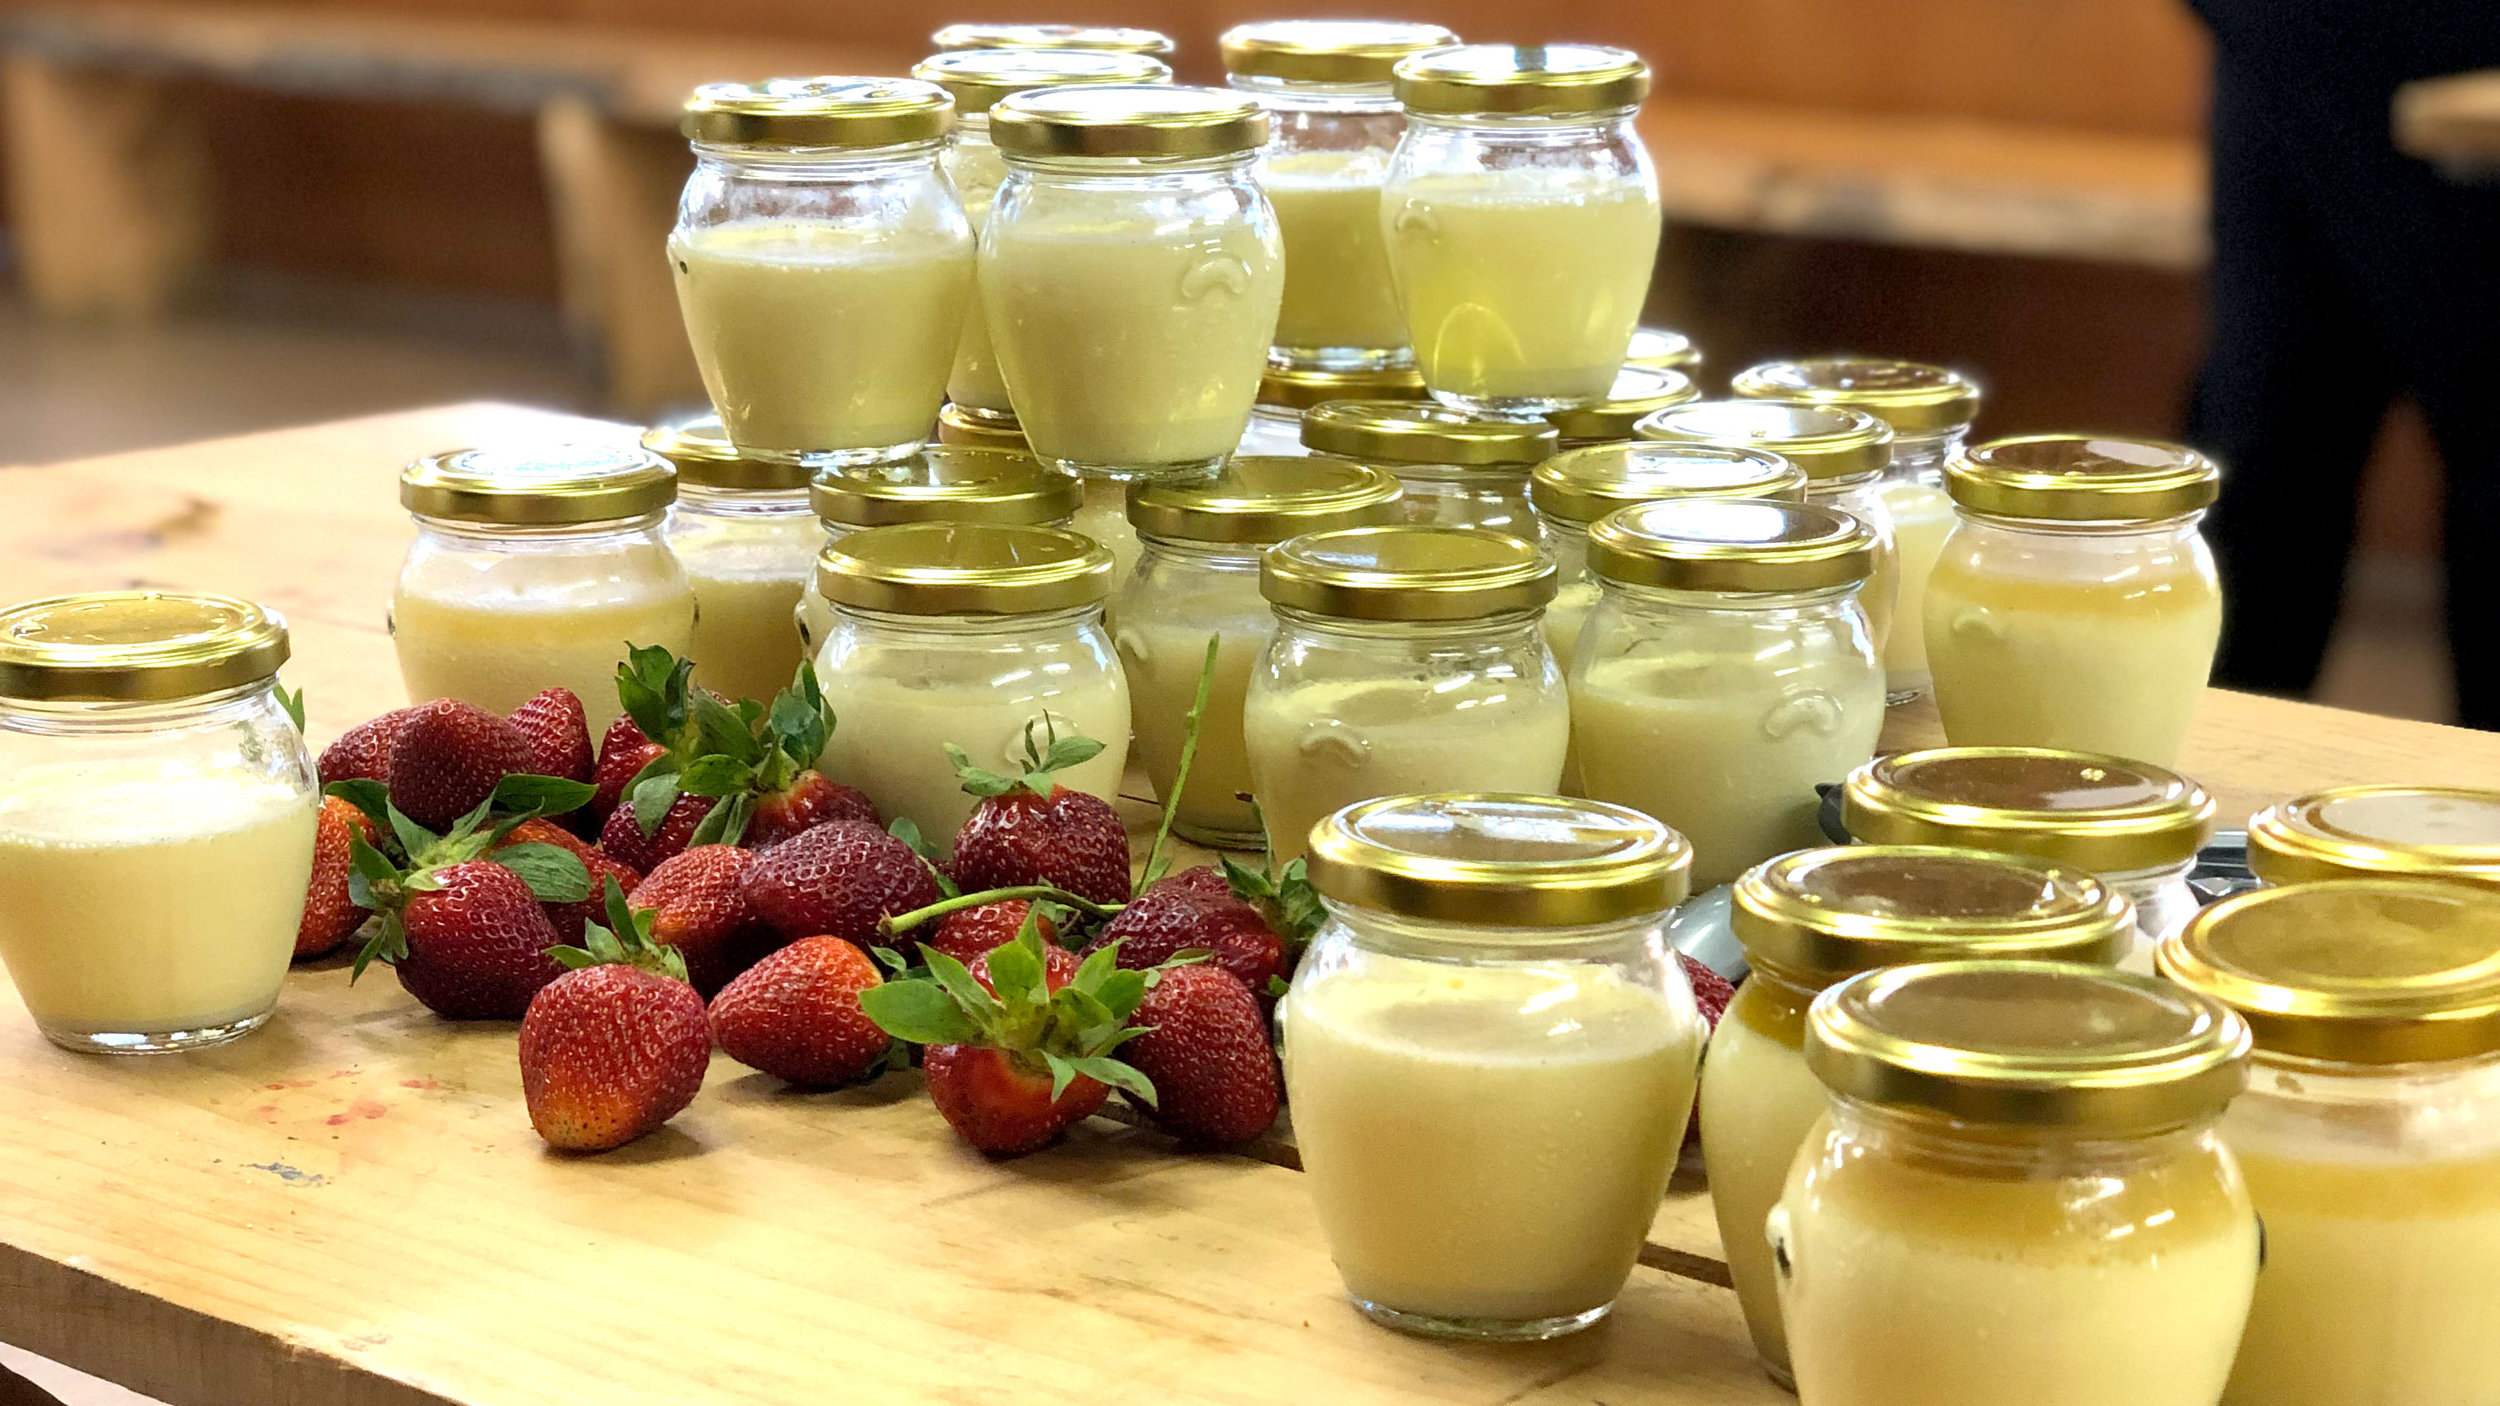 Jars of vanilla panna cotta and strawberries